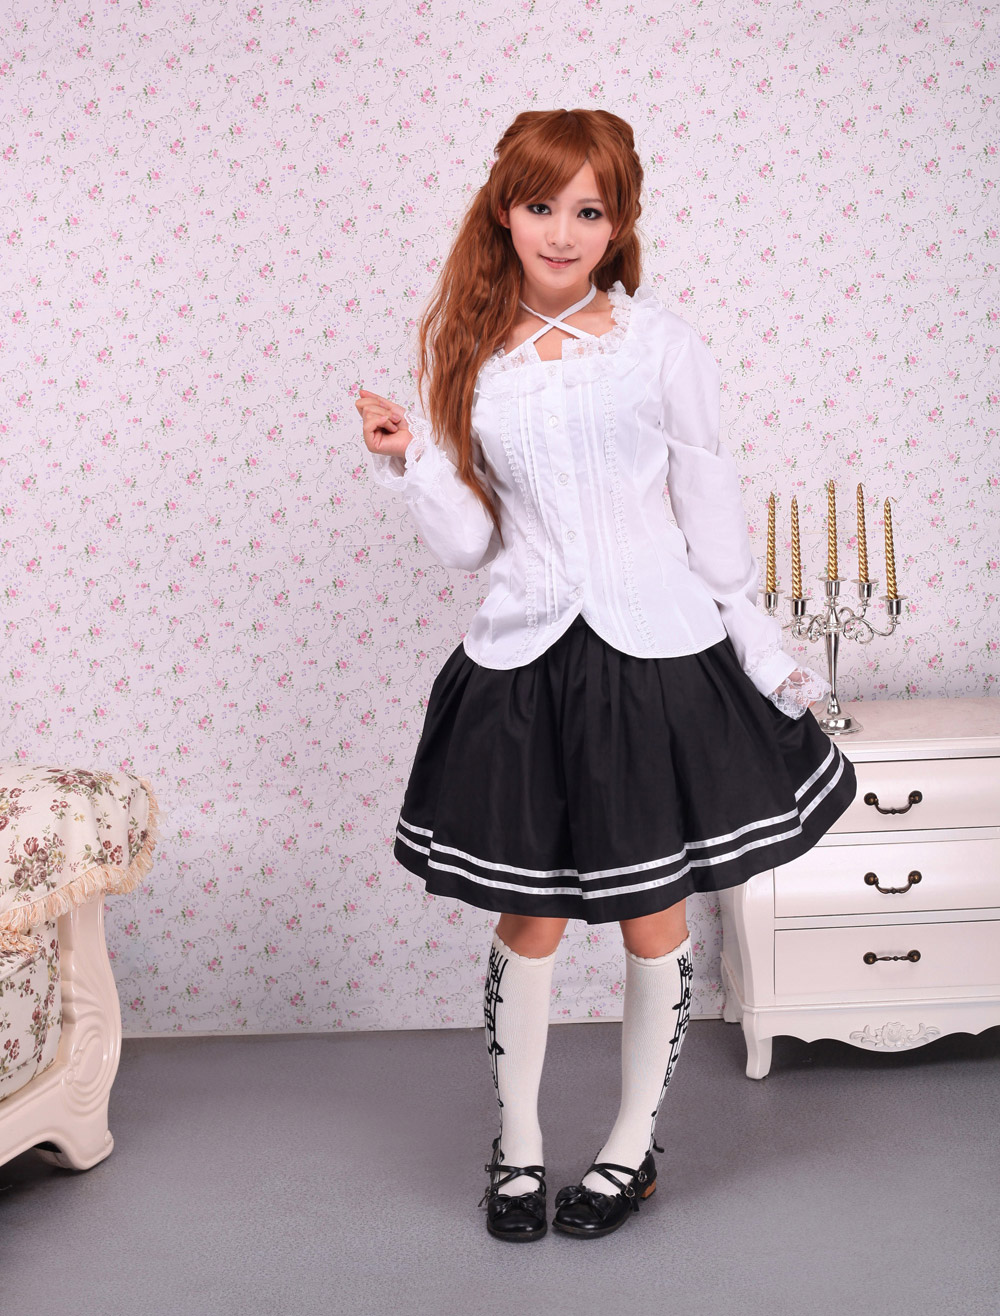 Buy White Cotton Lolita Blouse Long Sleeves Lace Trim Neck Straps for $40.49 in Milanoo store